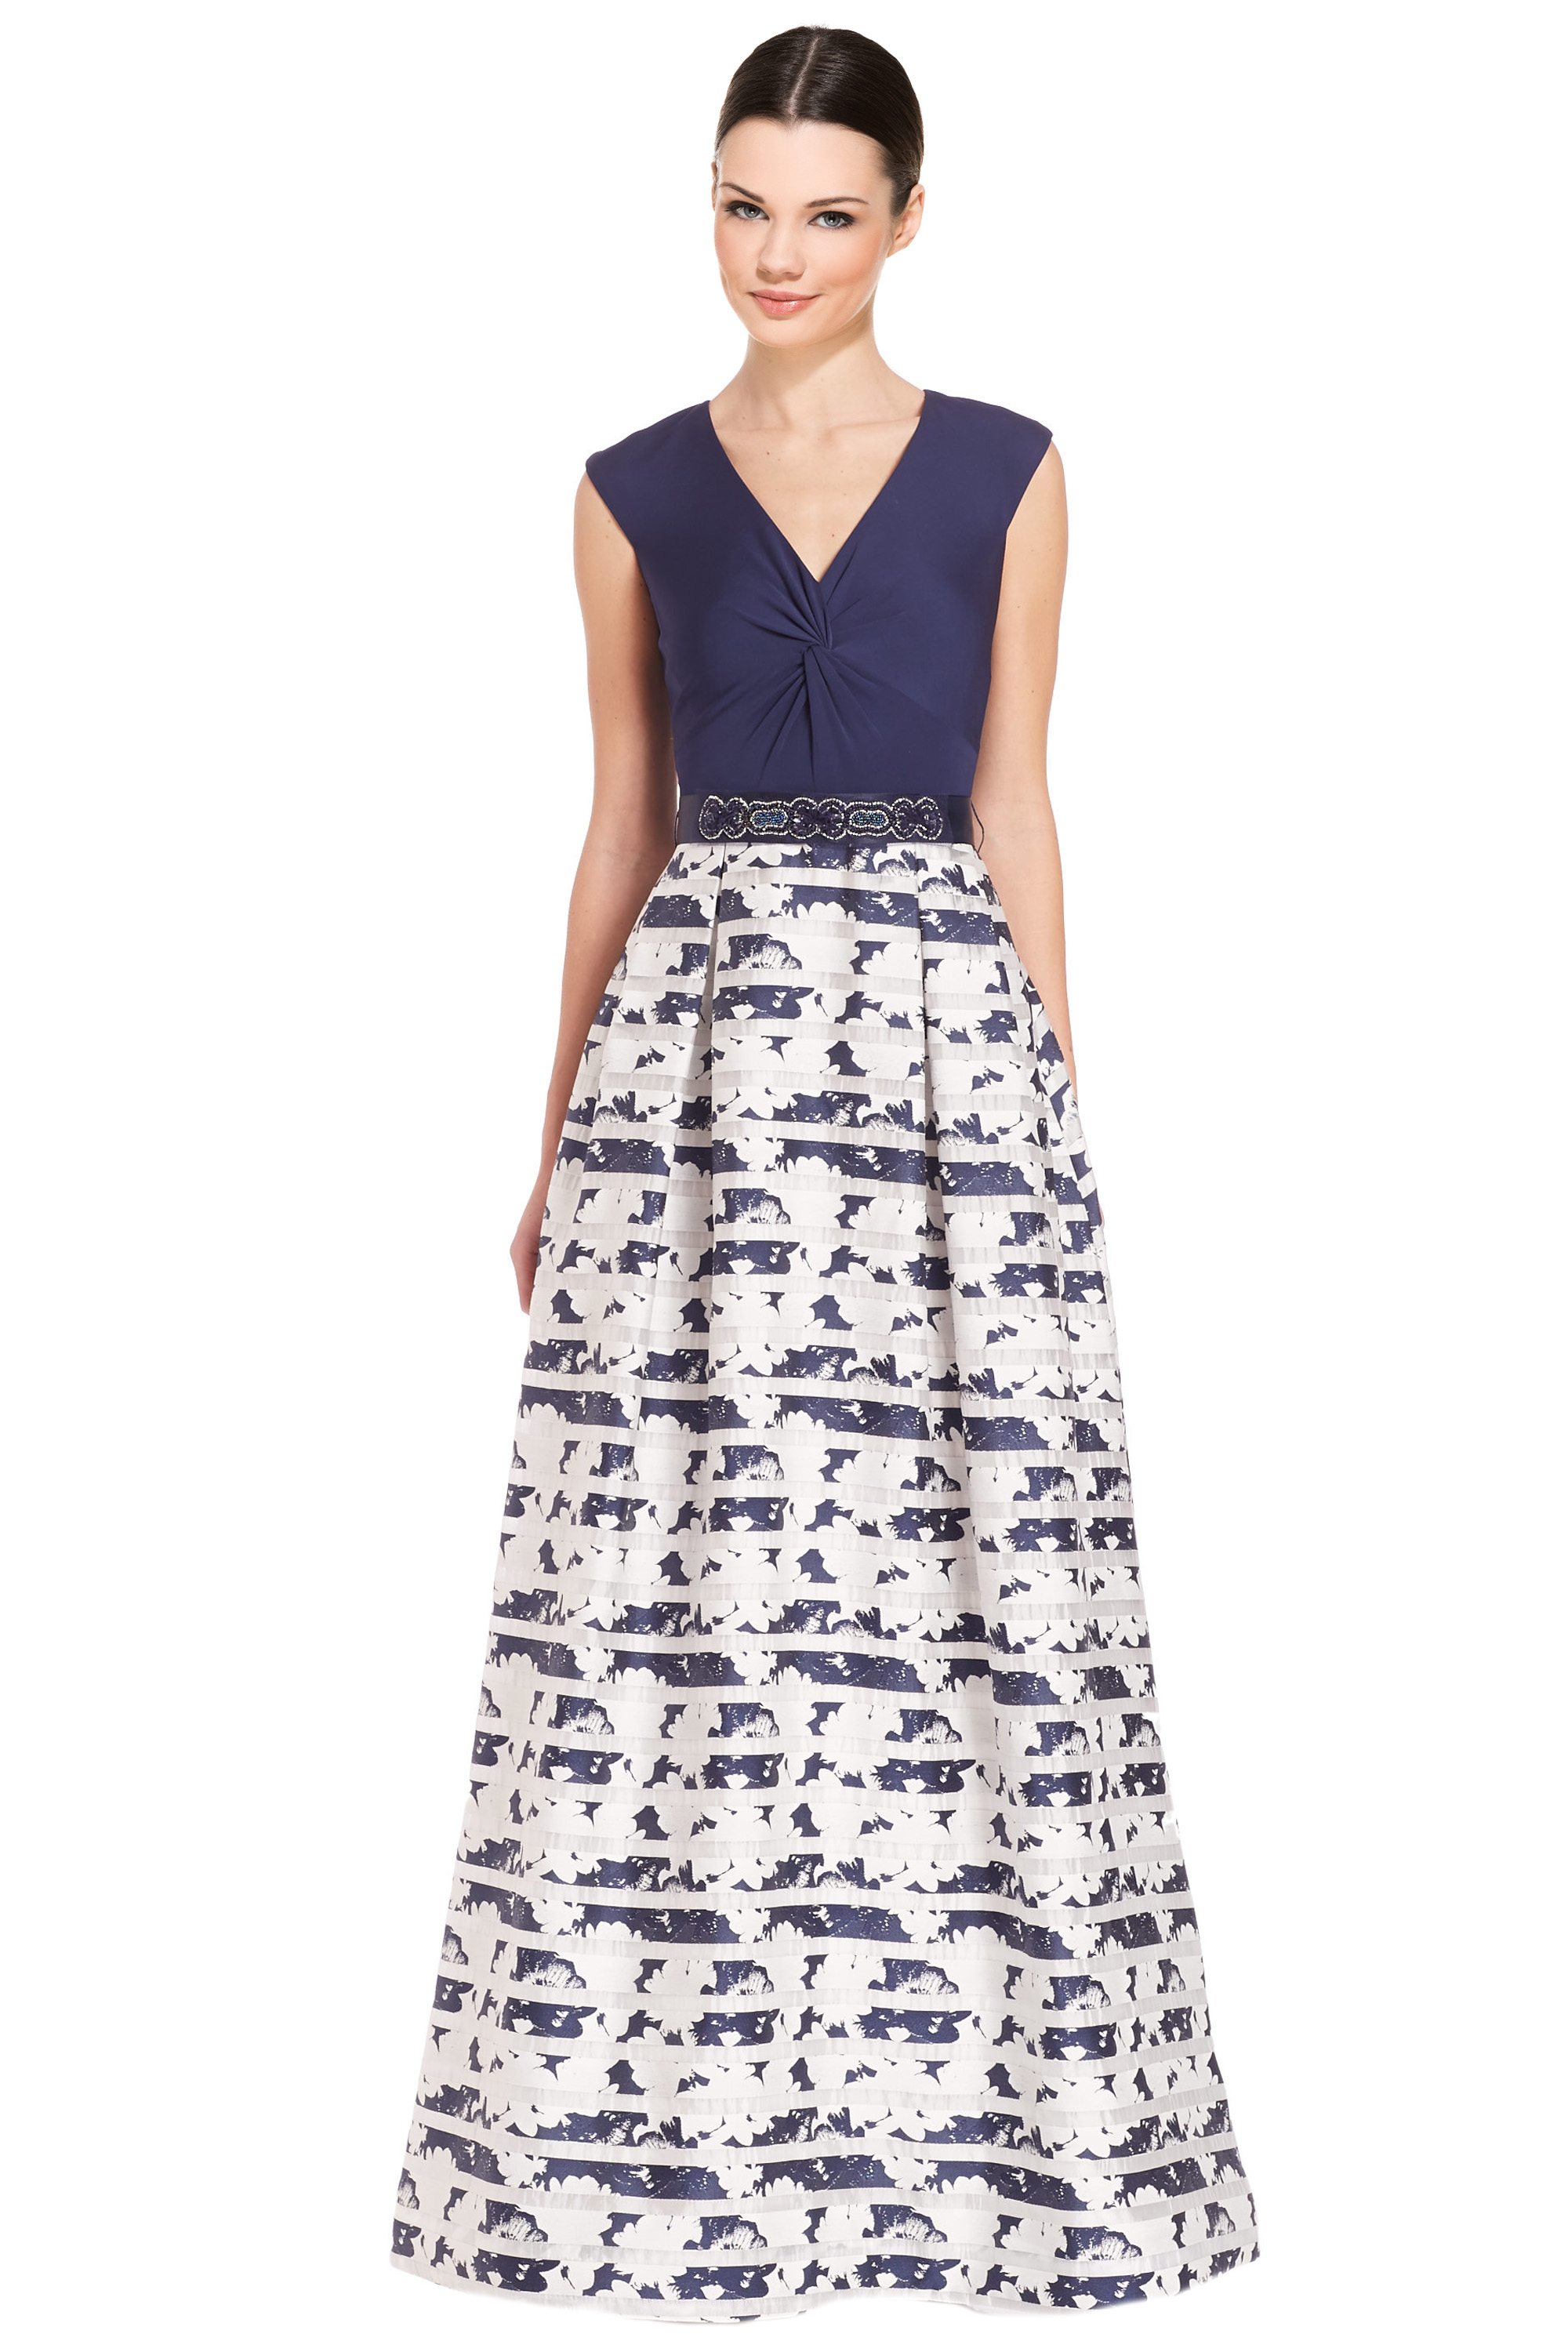 029a28f08368f Teri Jon Navy Knot Front V-Neck Printed Ball Evening Gown Dress 8 ...